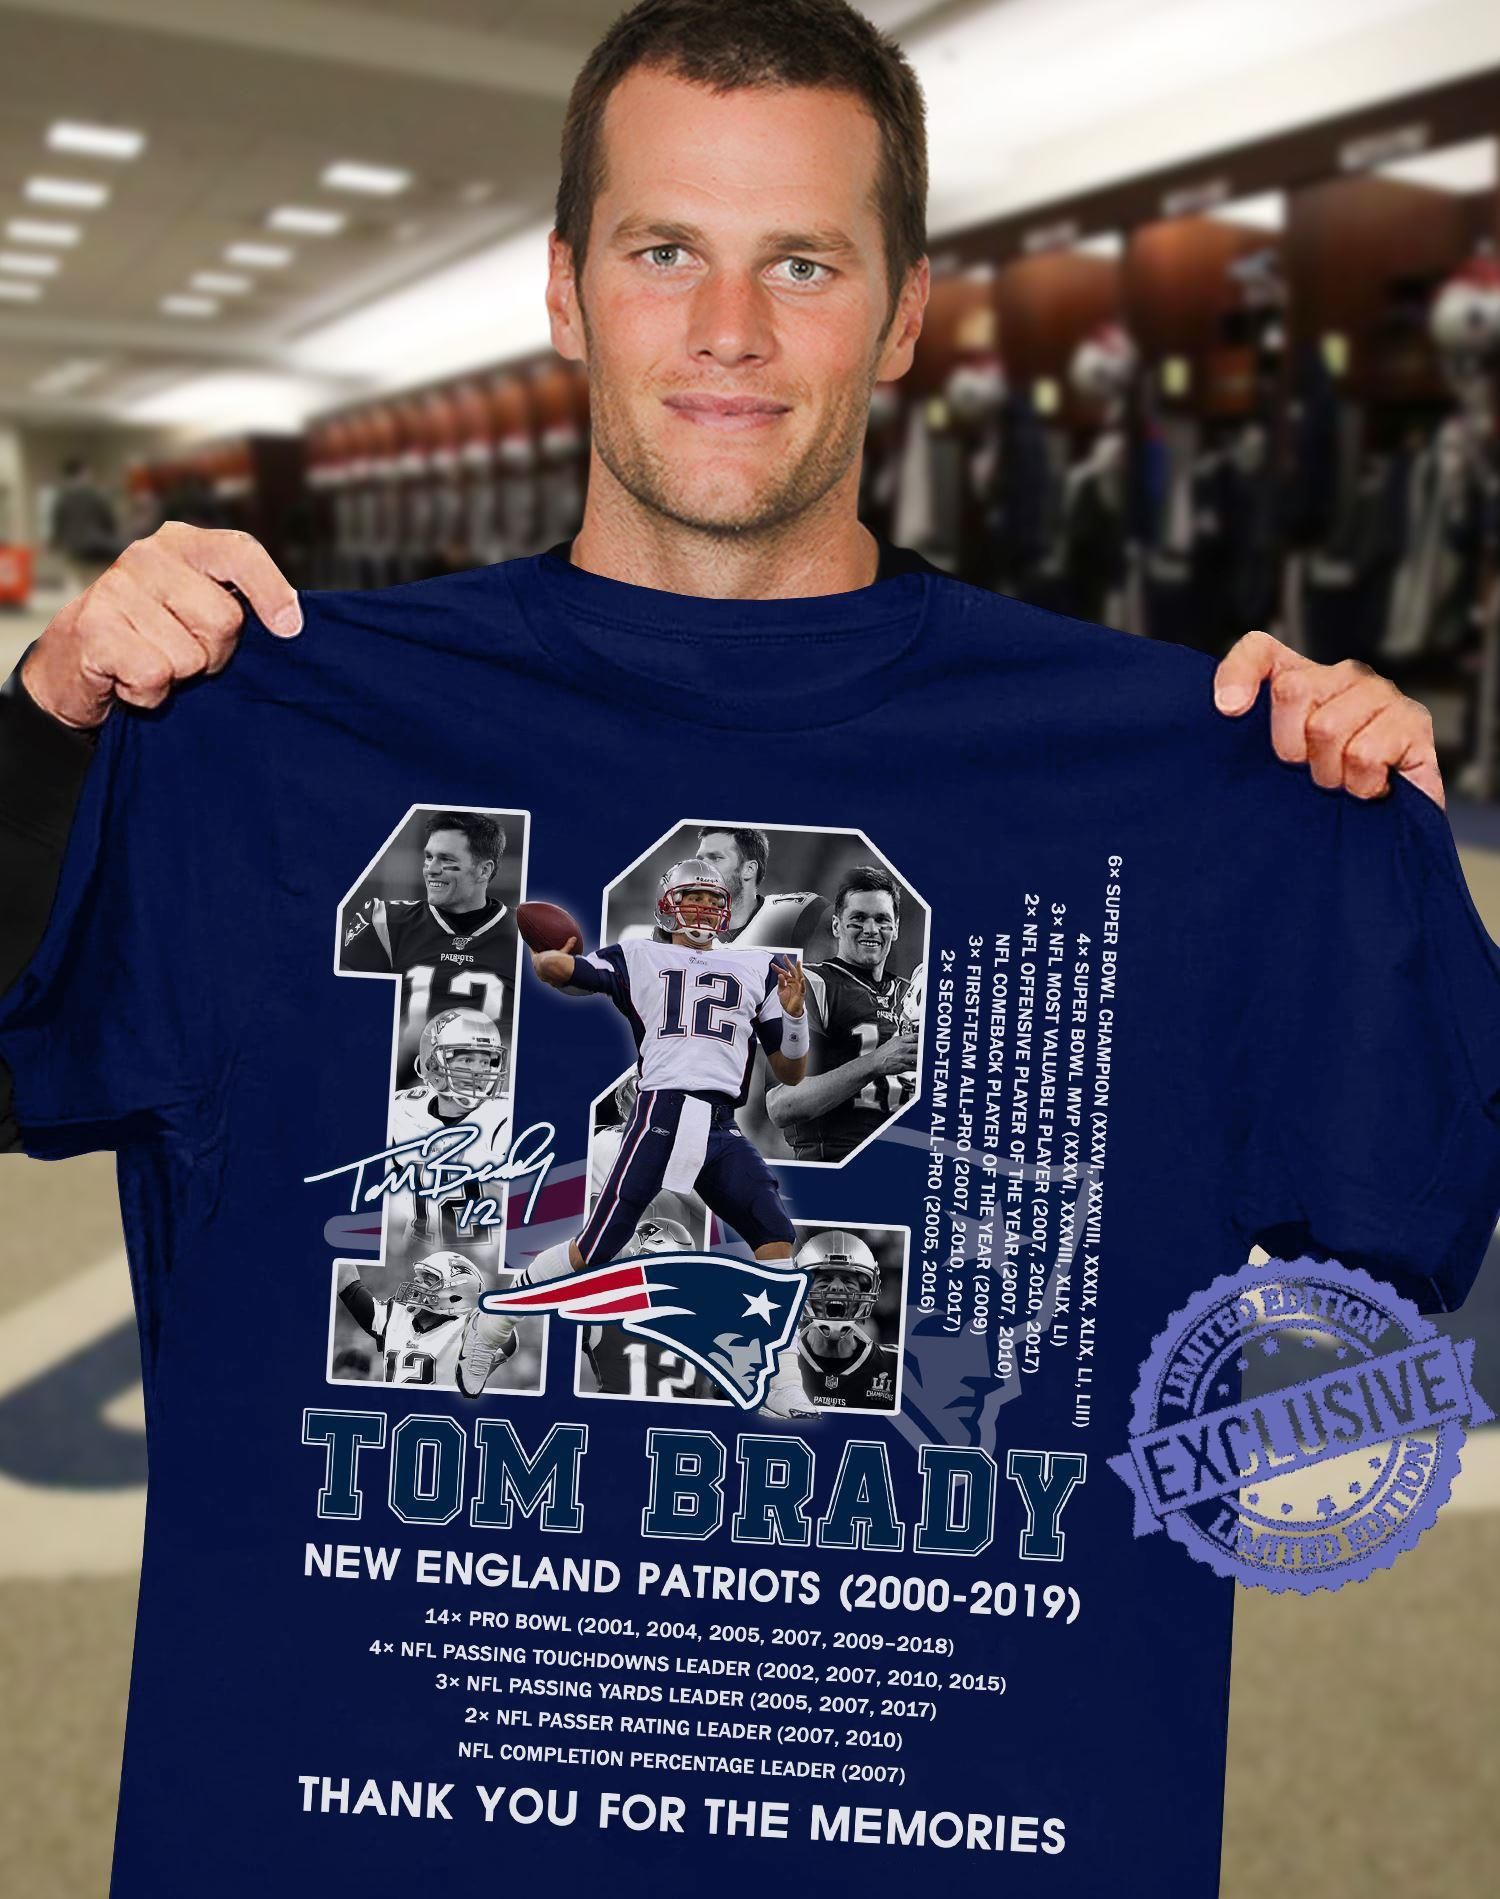 Tom brady new england patriots 2000 2019 thank you for the memories shirt